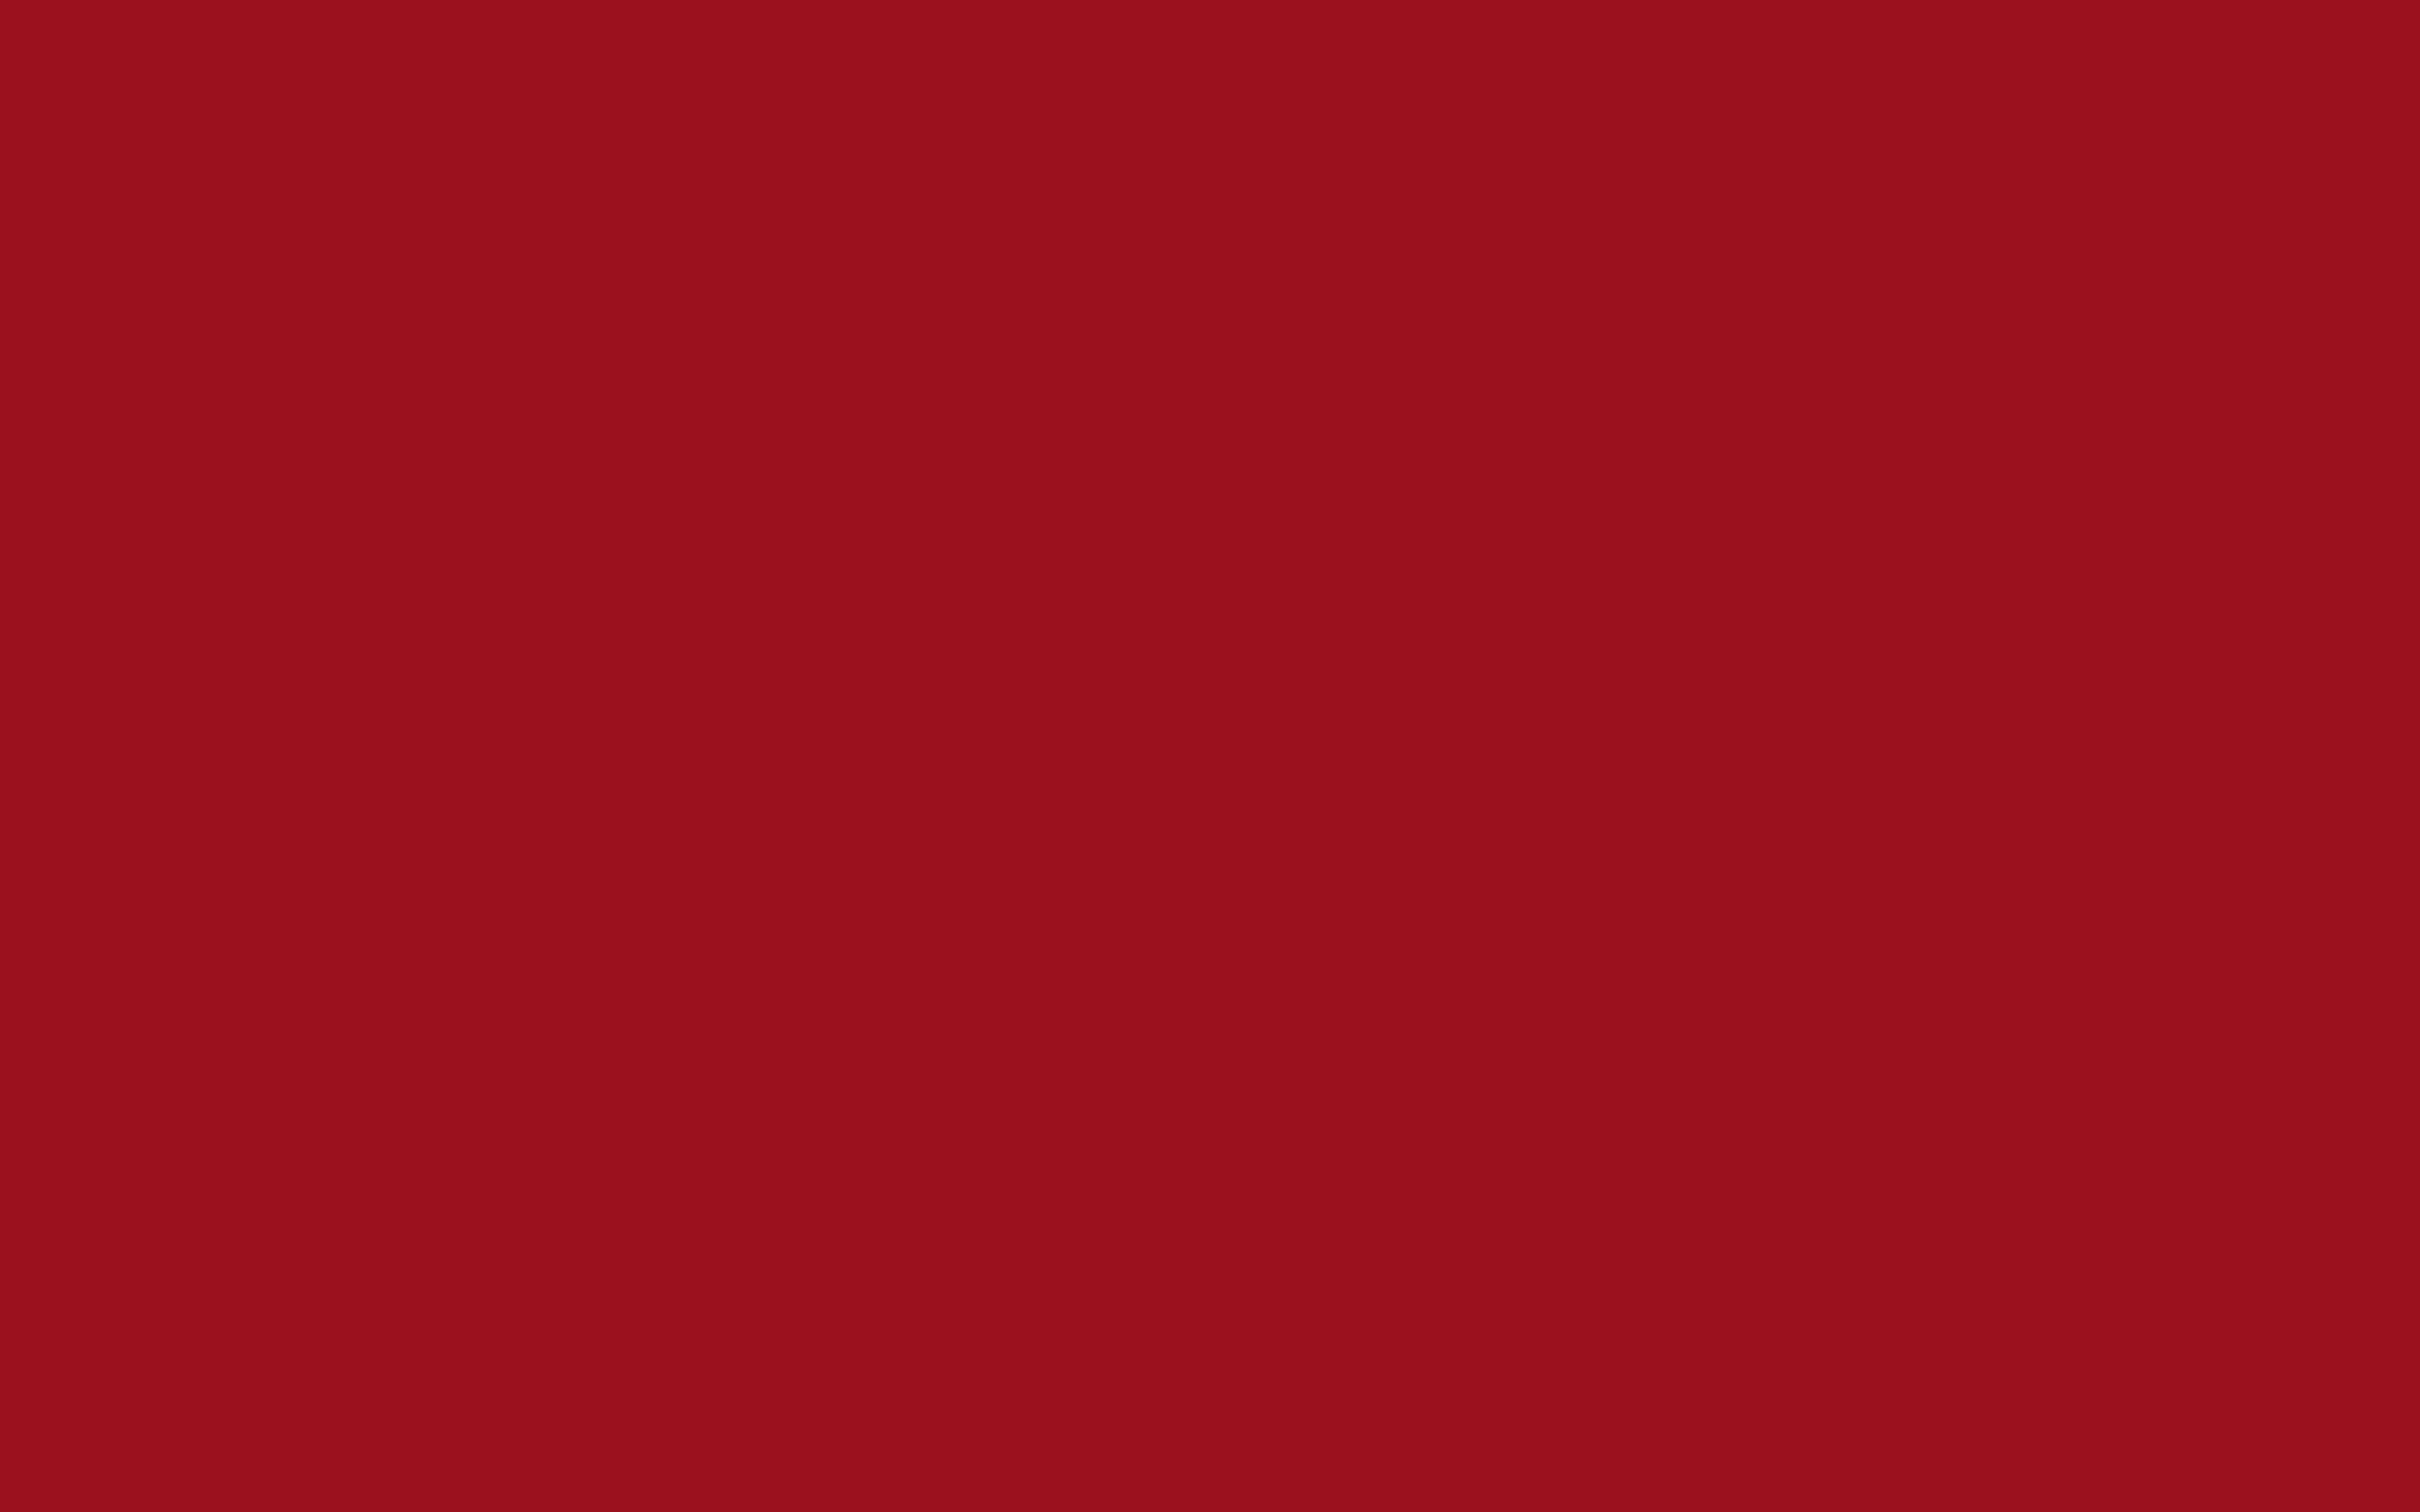 2560x1600 Ruby Red Solid Color Background